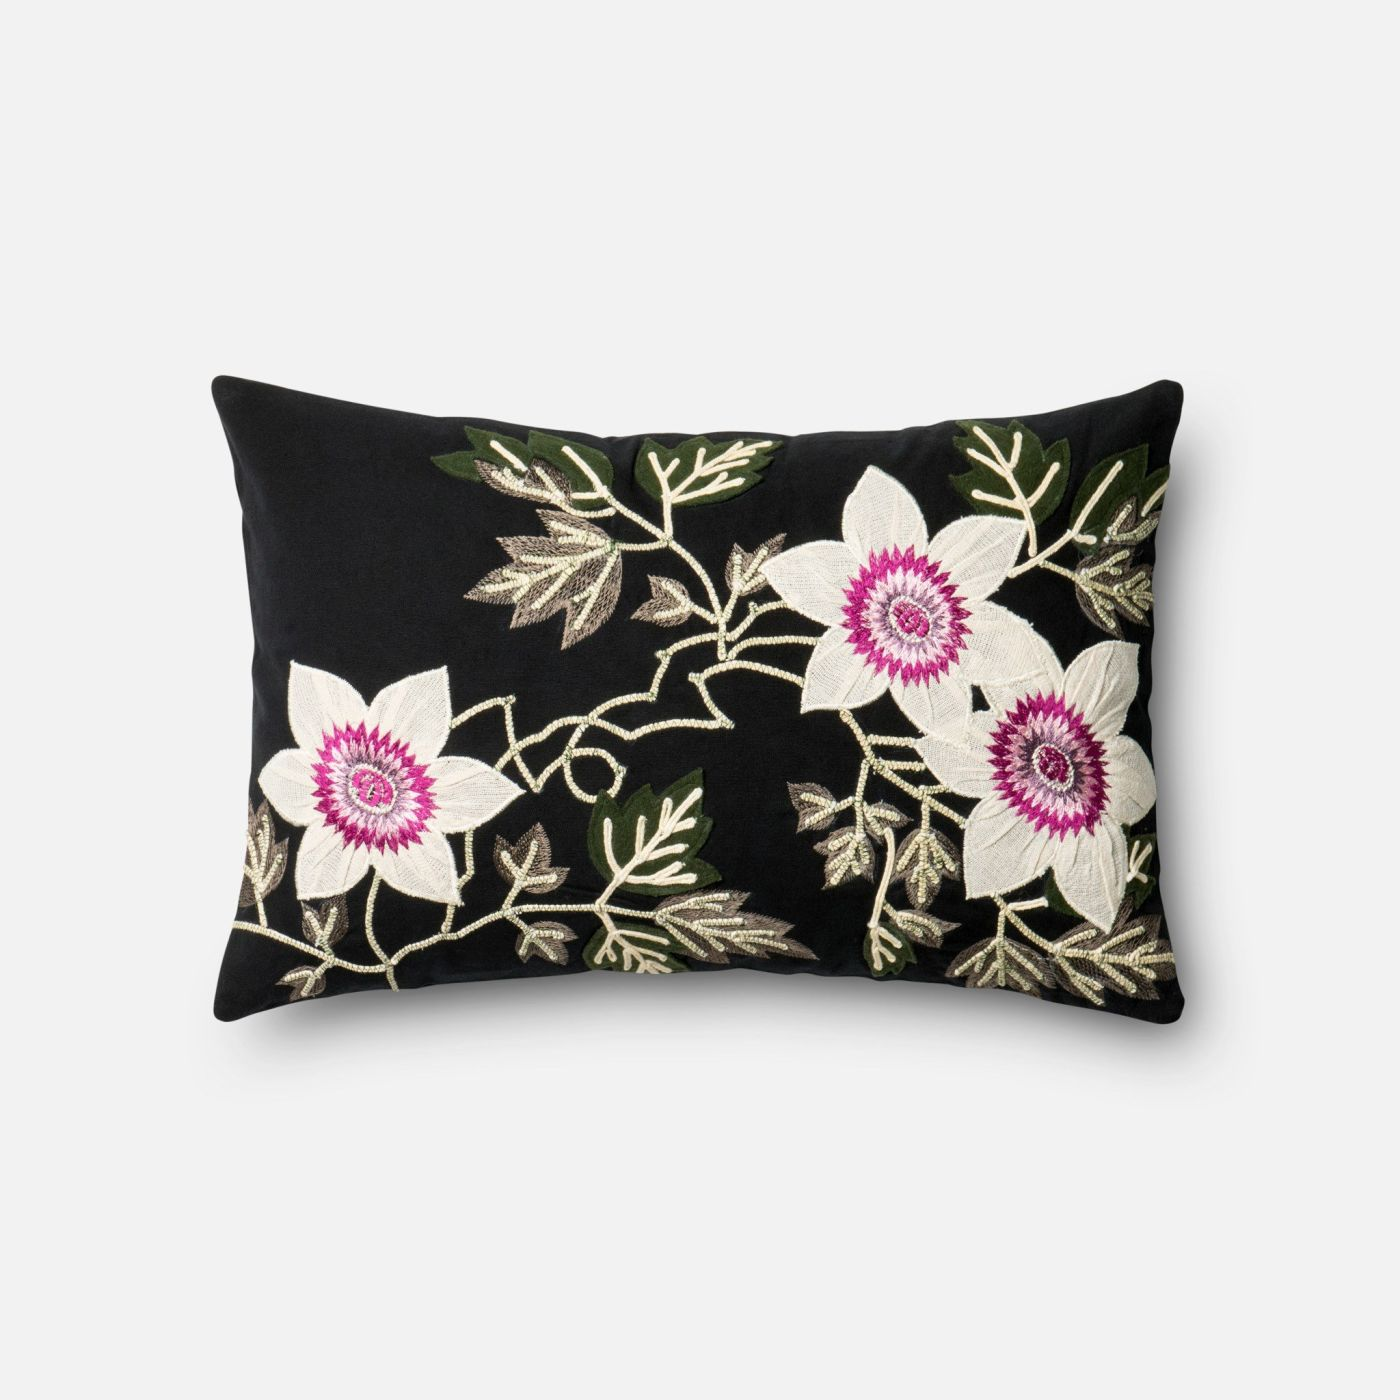 Black And Ivory Throw Pillows : Loloi Rugs Loloi Black / Ivory Decorative Throw Pillow (P0295) PSETP0295BLIVPIL5. Only USD69.00 at ...